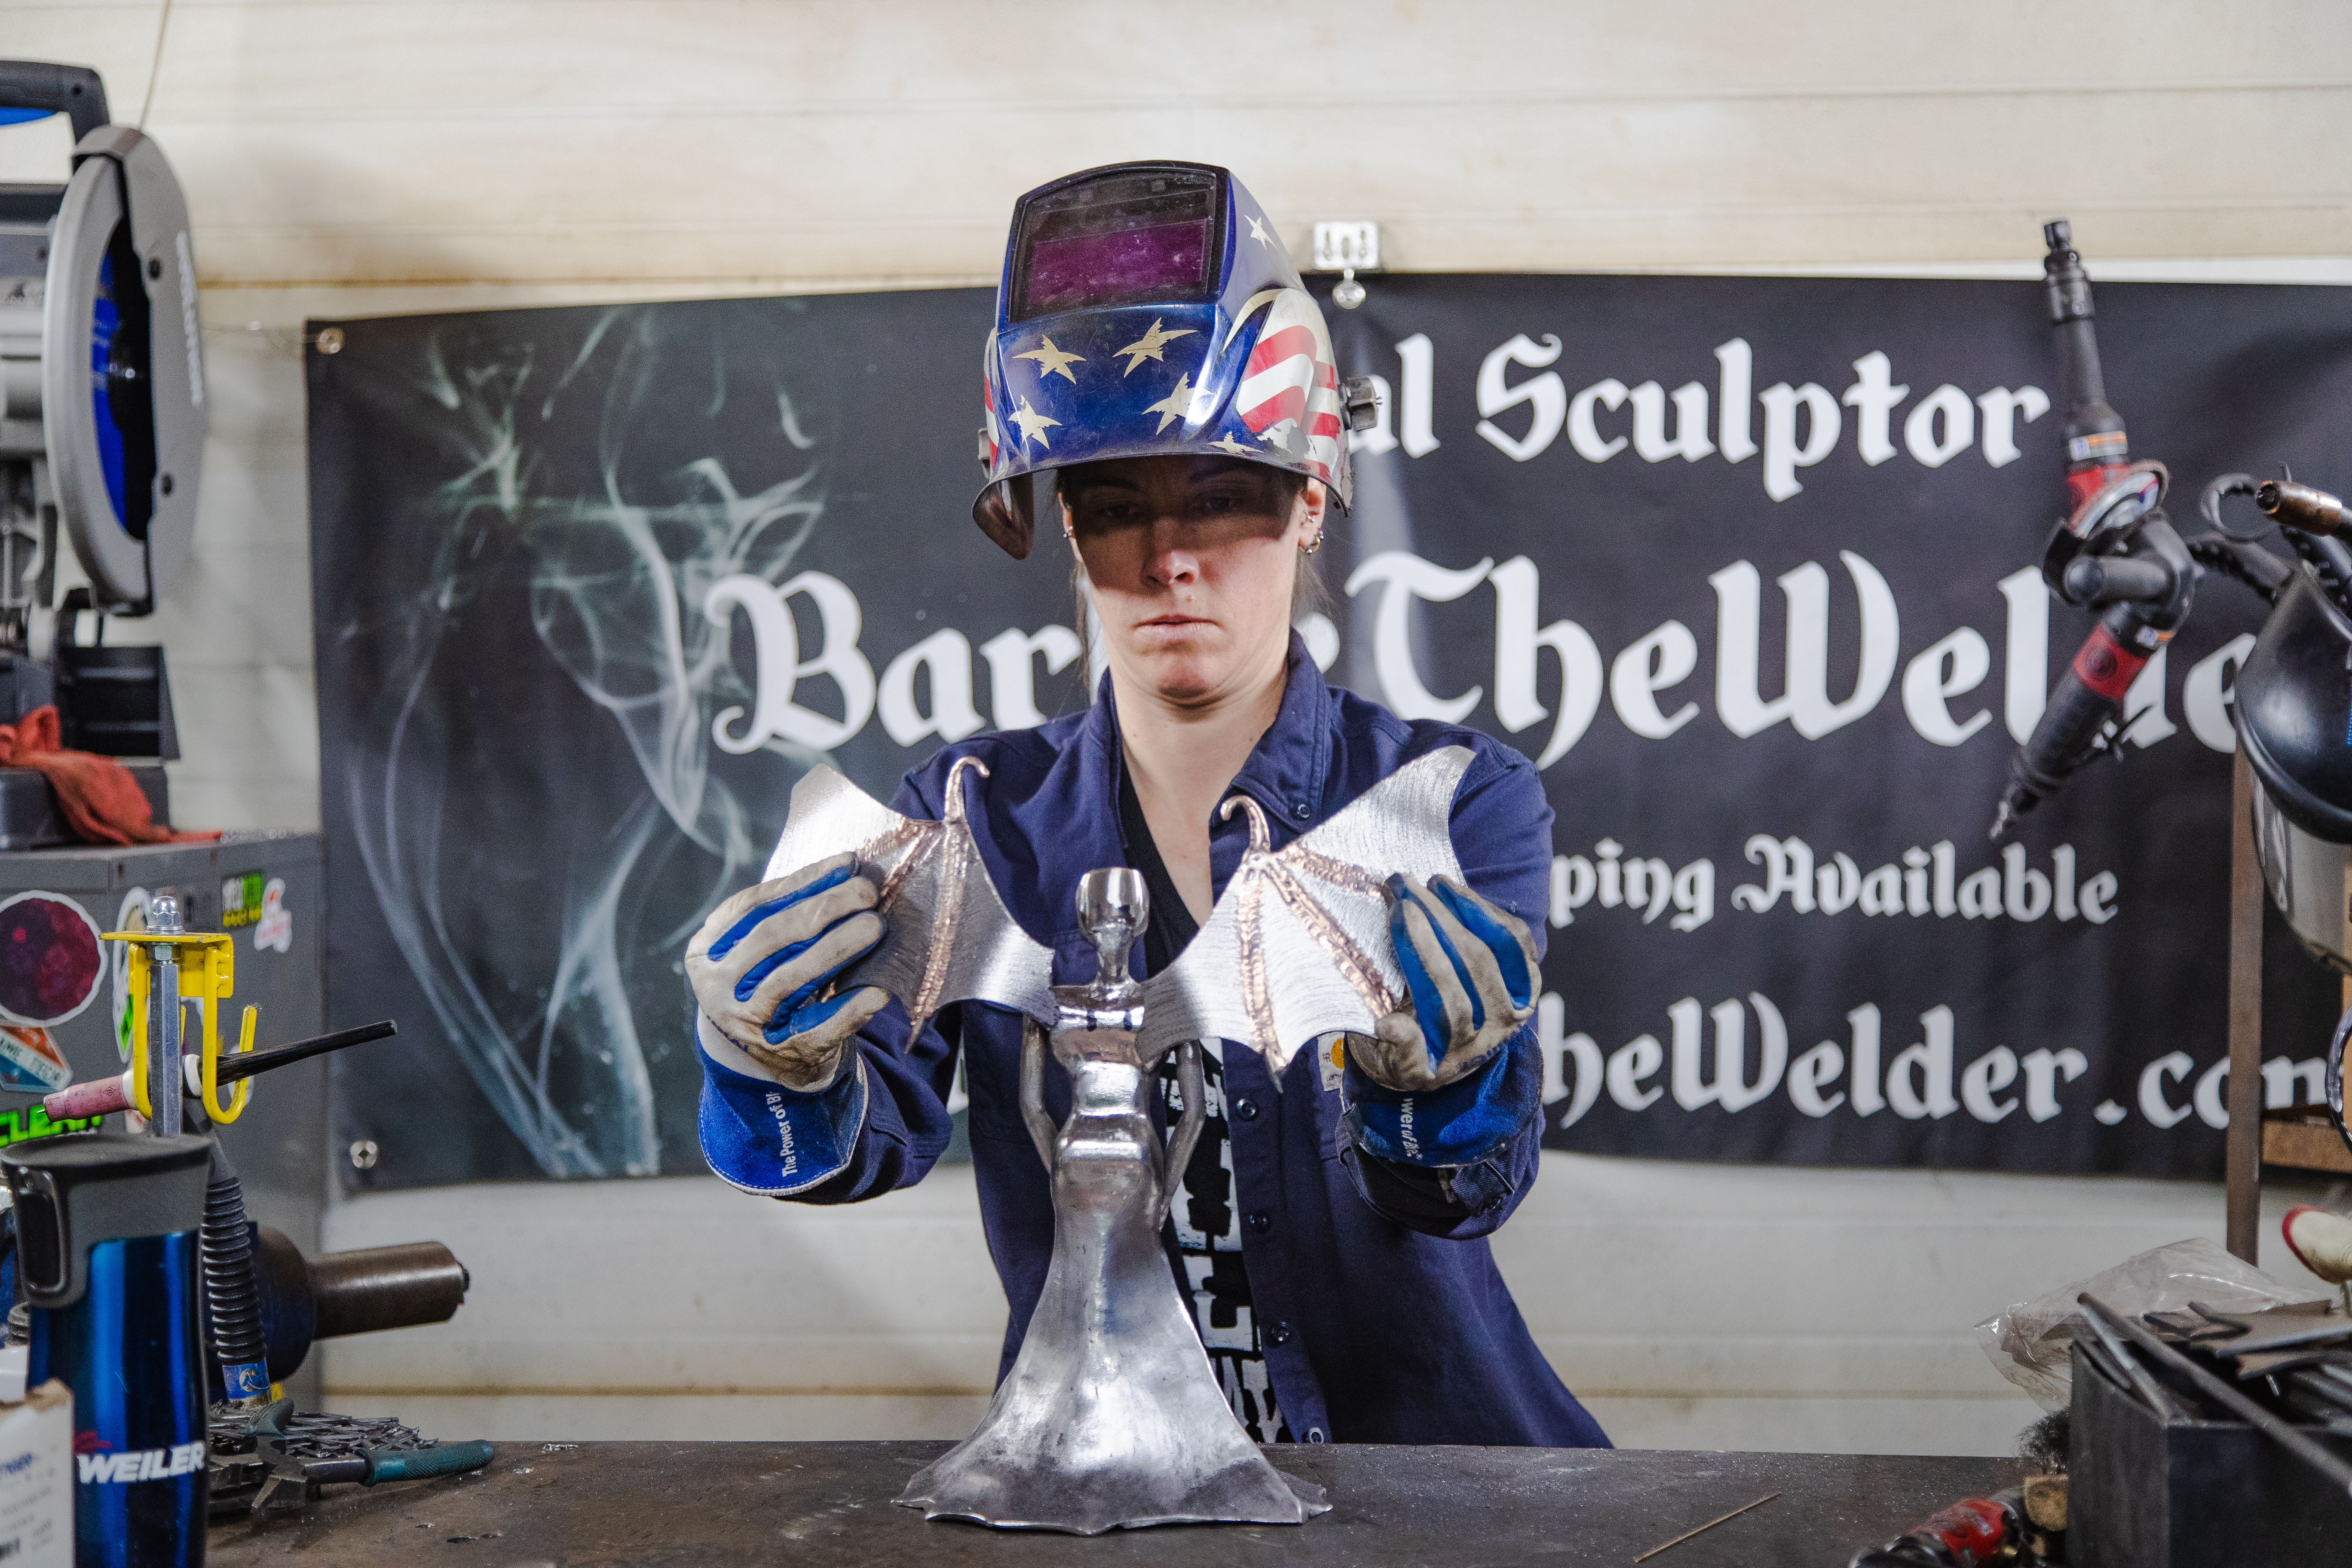 Barbie The Welder fitting the wings for Matilda Bat woman